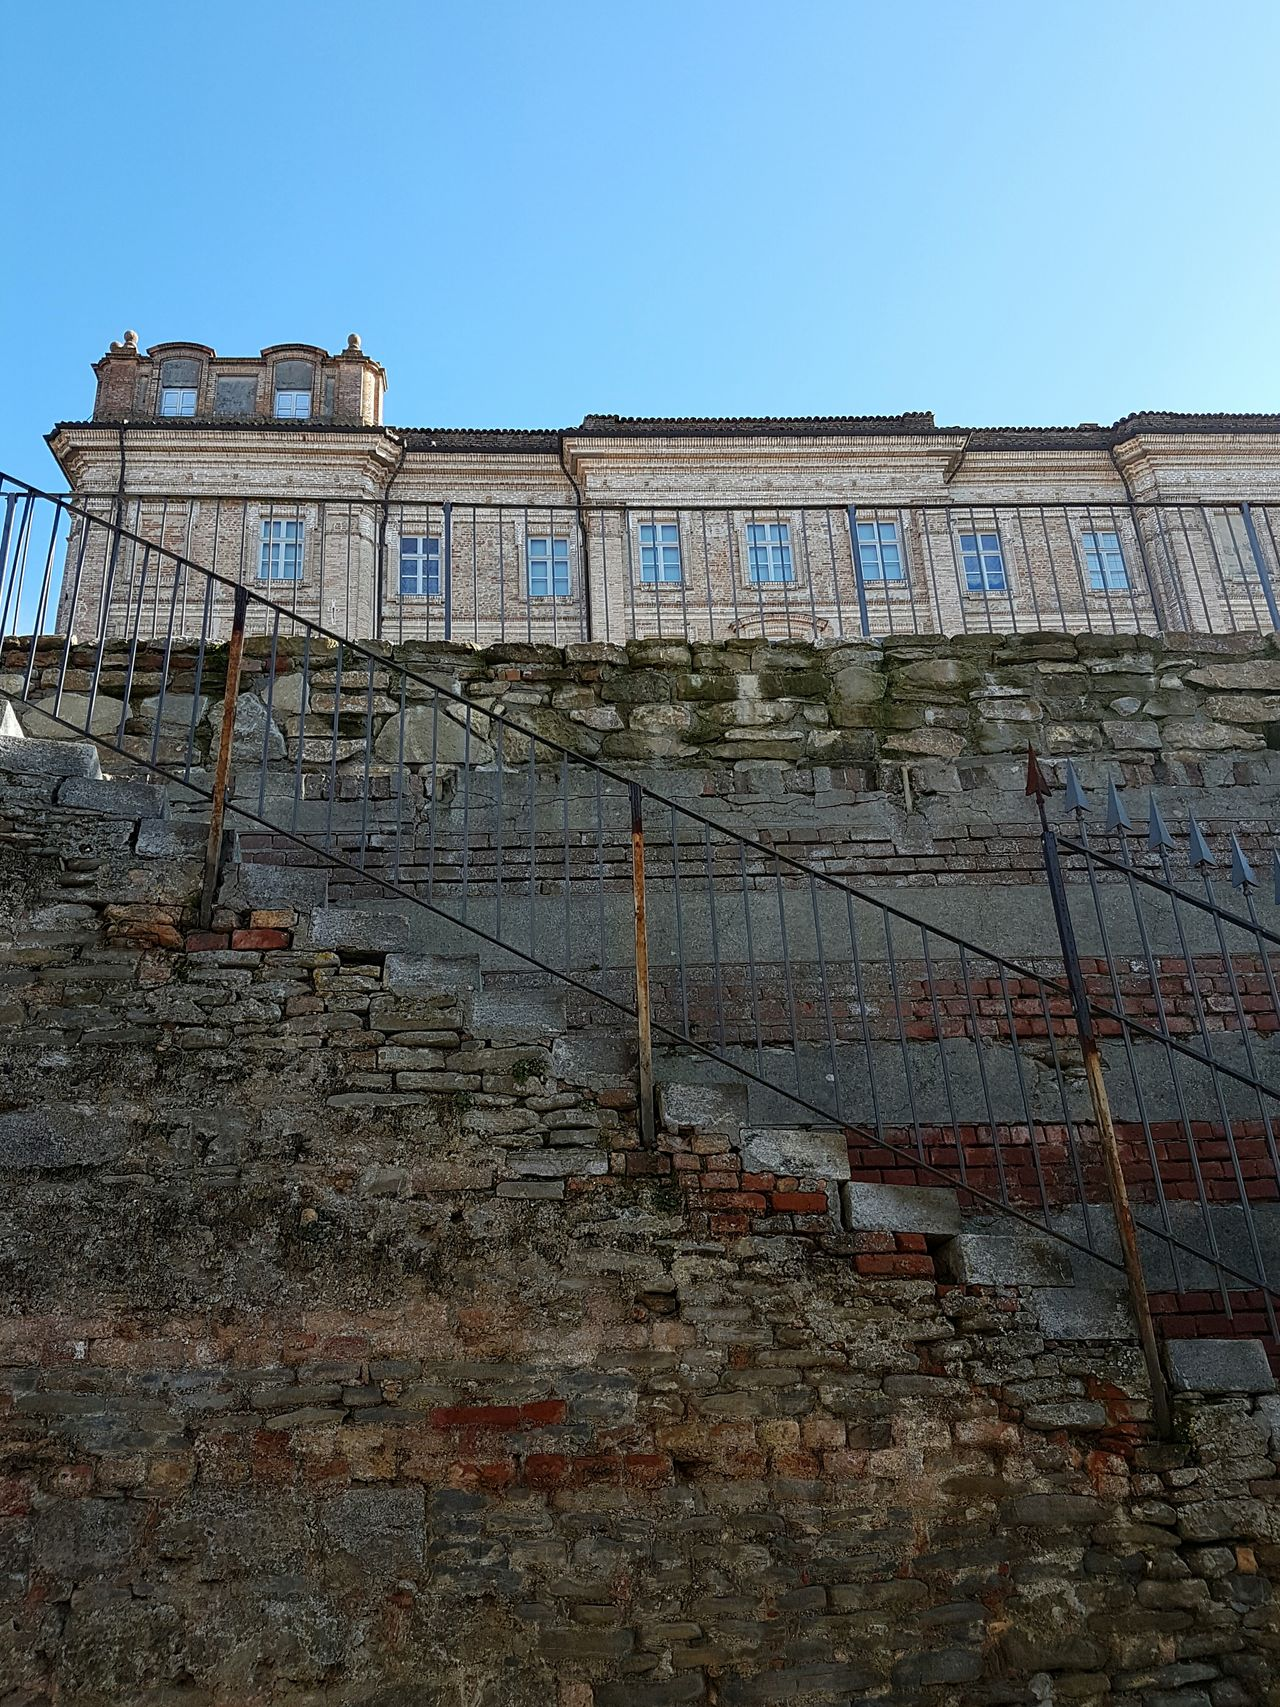 Clear Sky Outdoors No People Day Sky Cultures Architecture Low Angle View Building Exterior Piedmont Italy Langhe Travel Destinations Brick Wall At The Castle Castle Old Stair